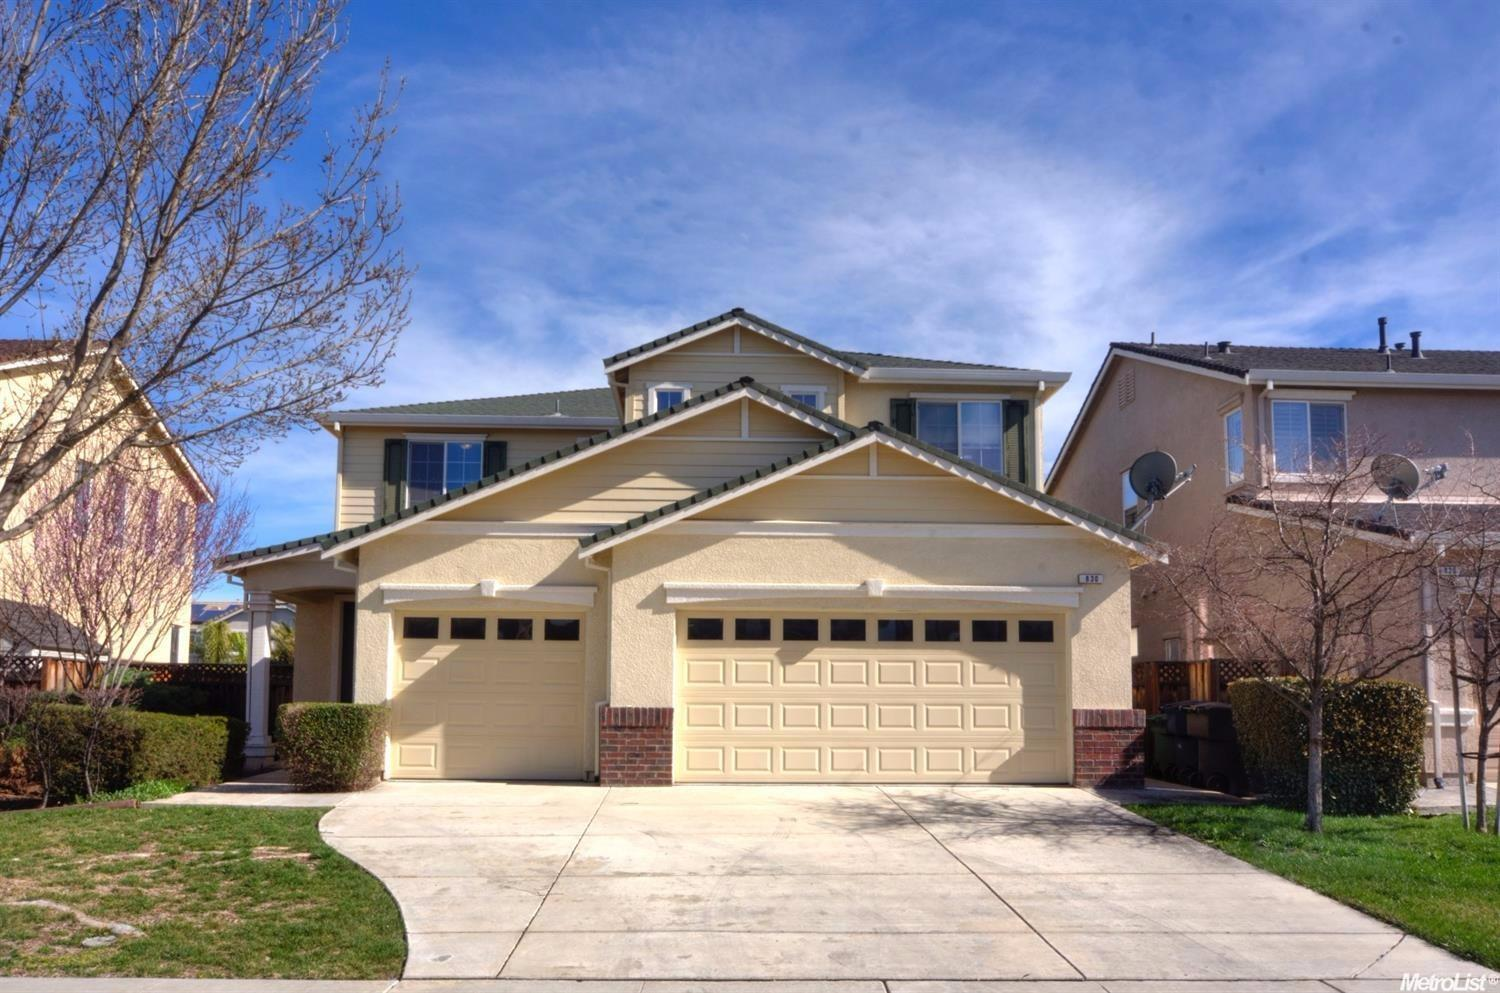 Photo of 830 Saffron Drive, Tracy, CA, 95377